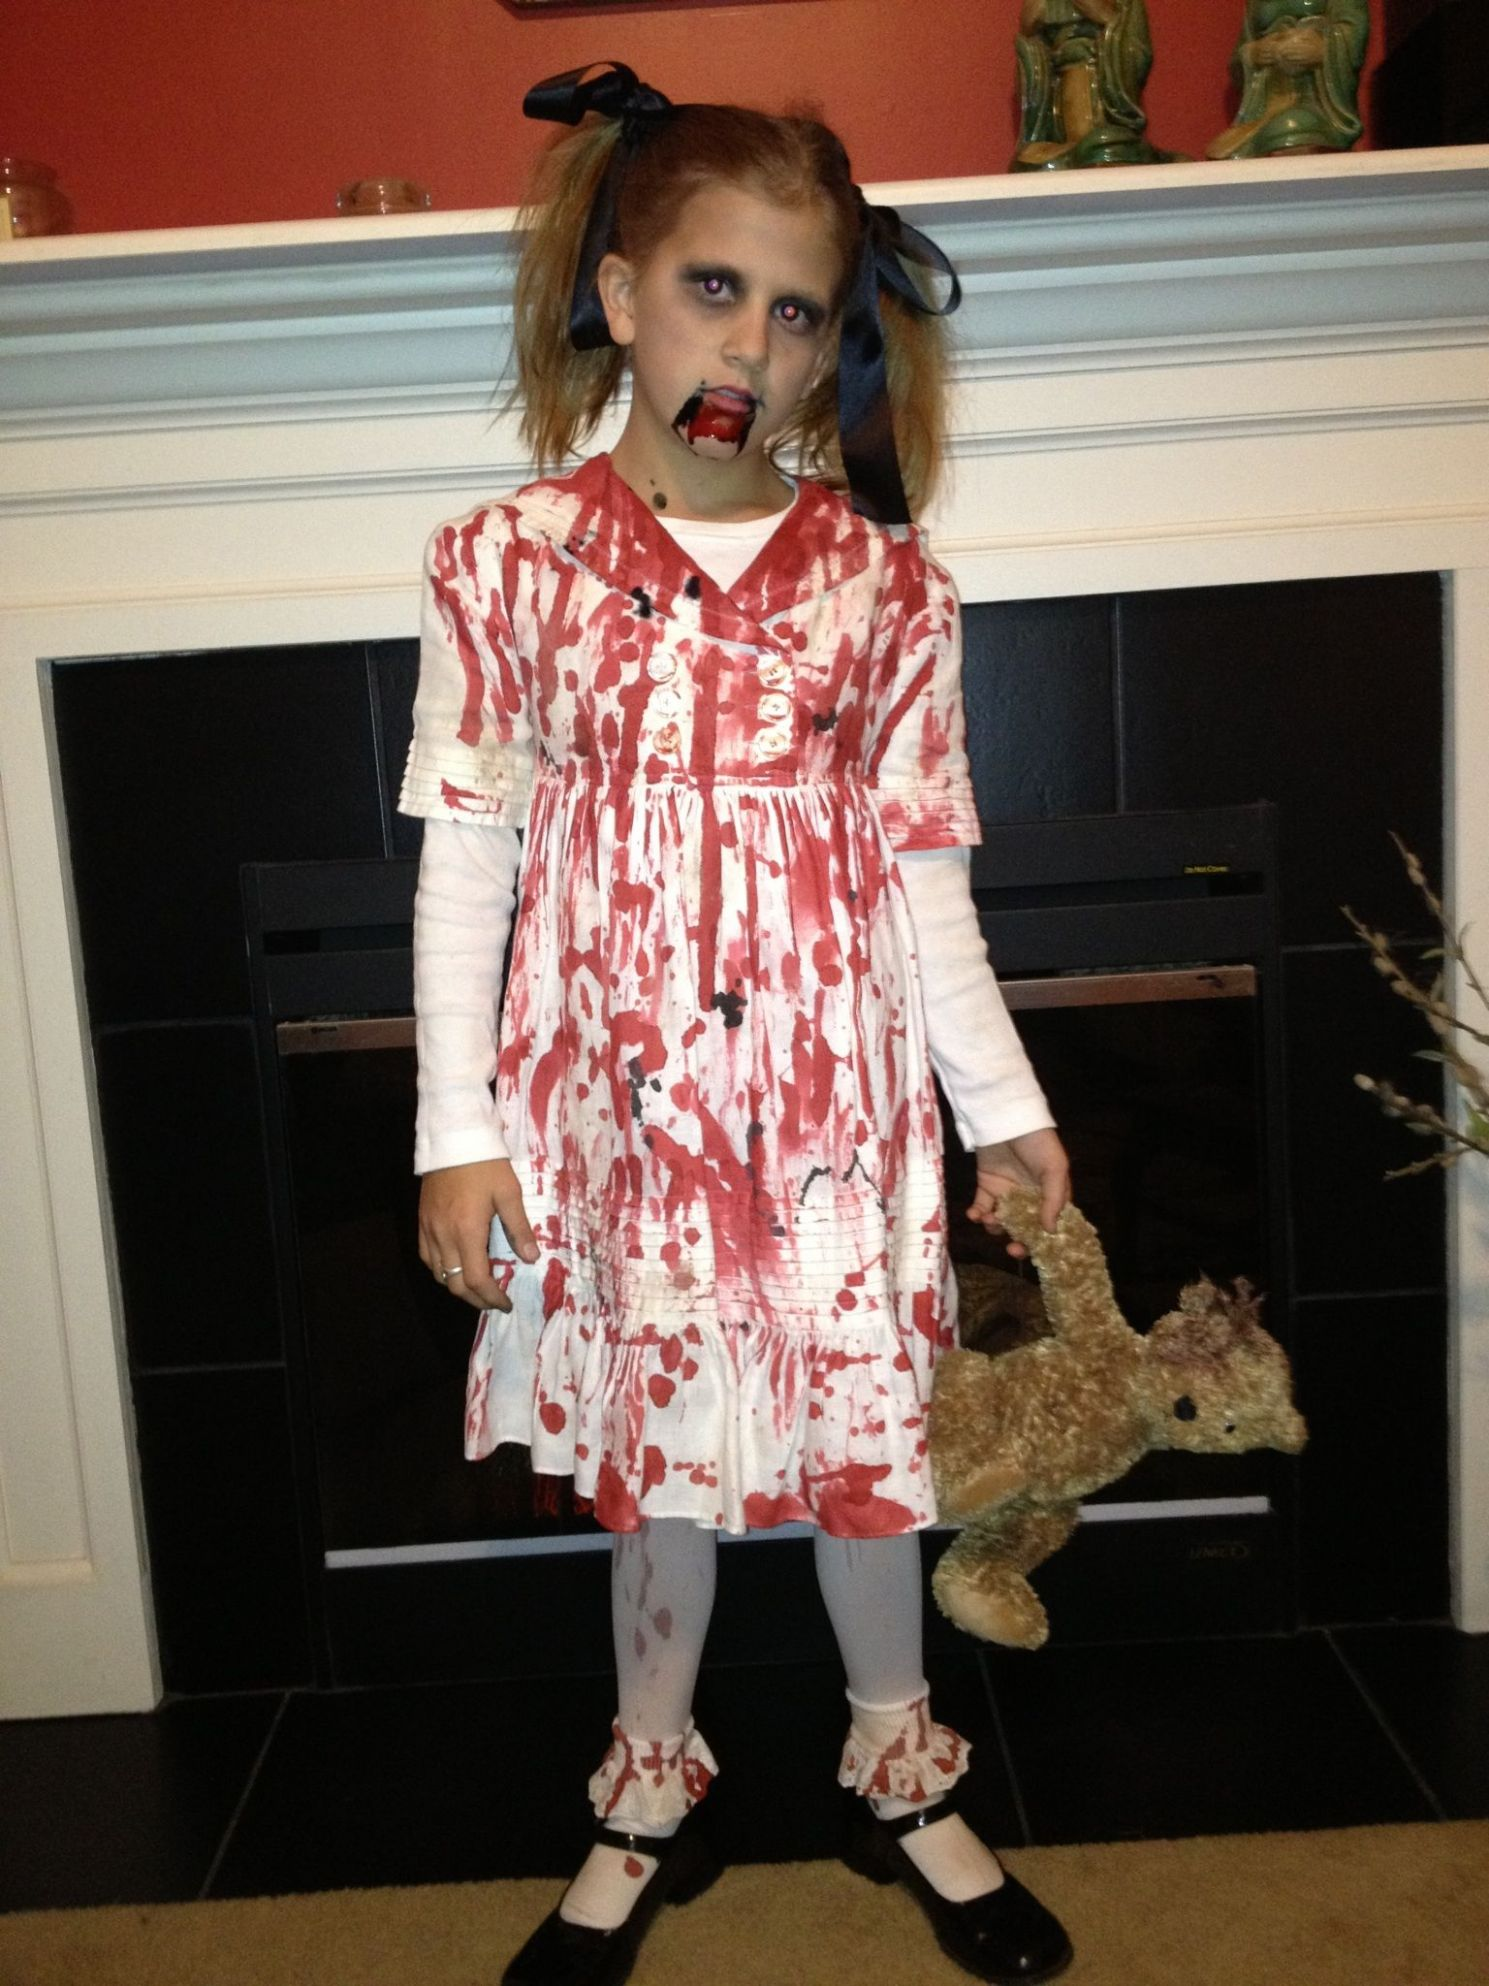 Little girl zombie costume (With images) | Zombie costume, Little ..